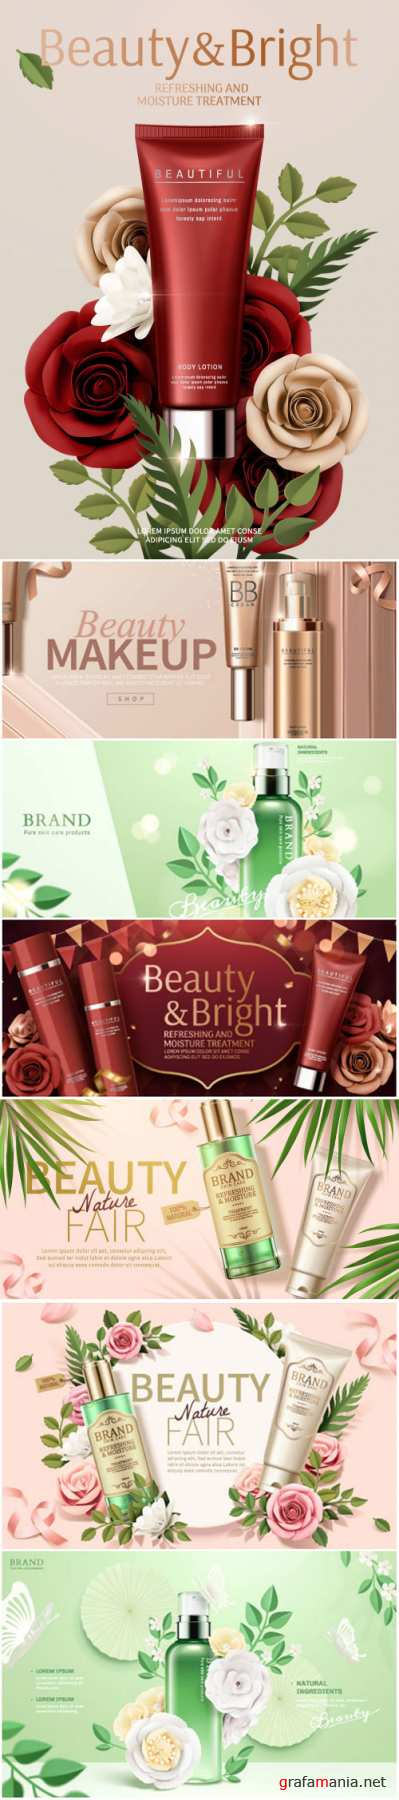 Brand cosmetic design, foundation banner ads # 4